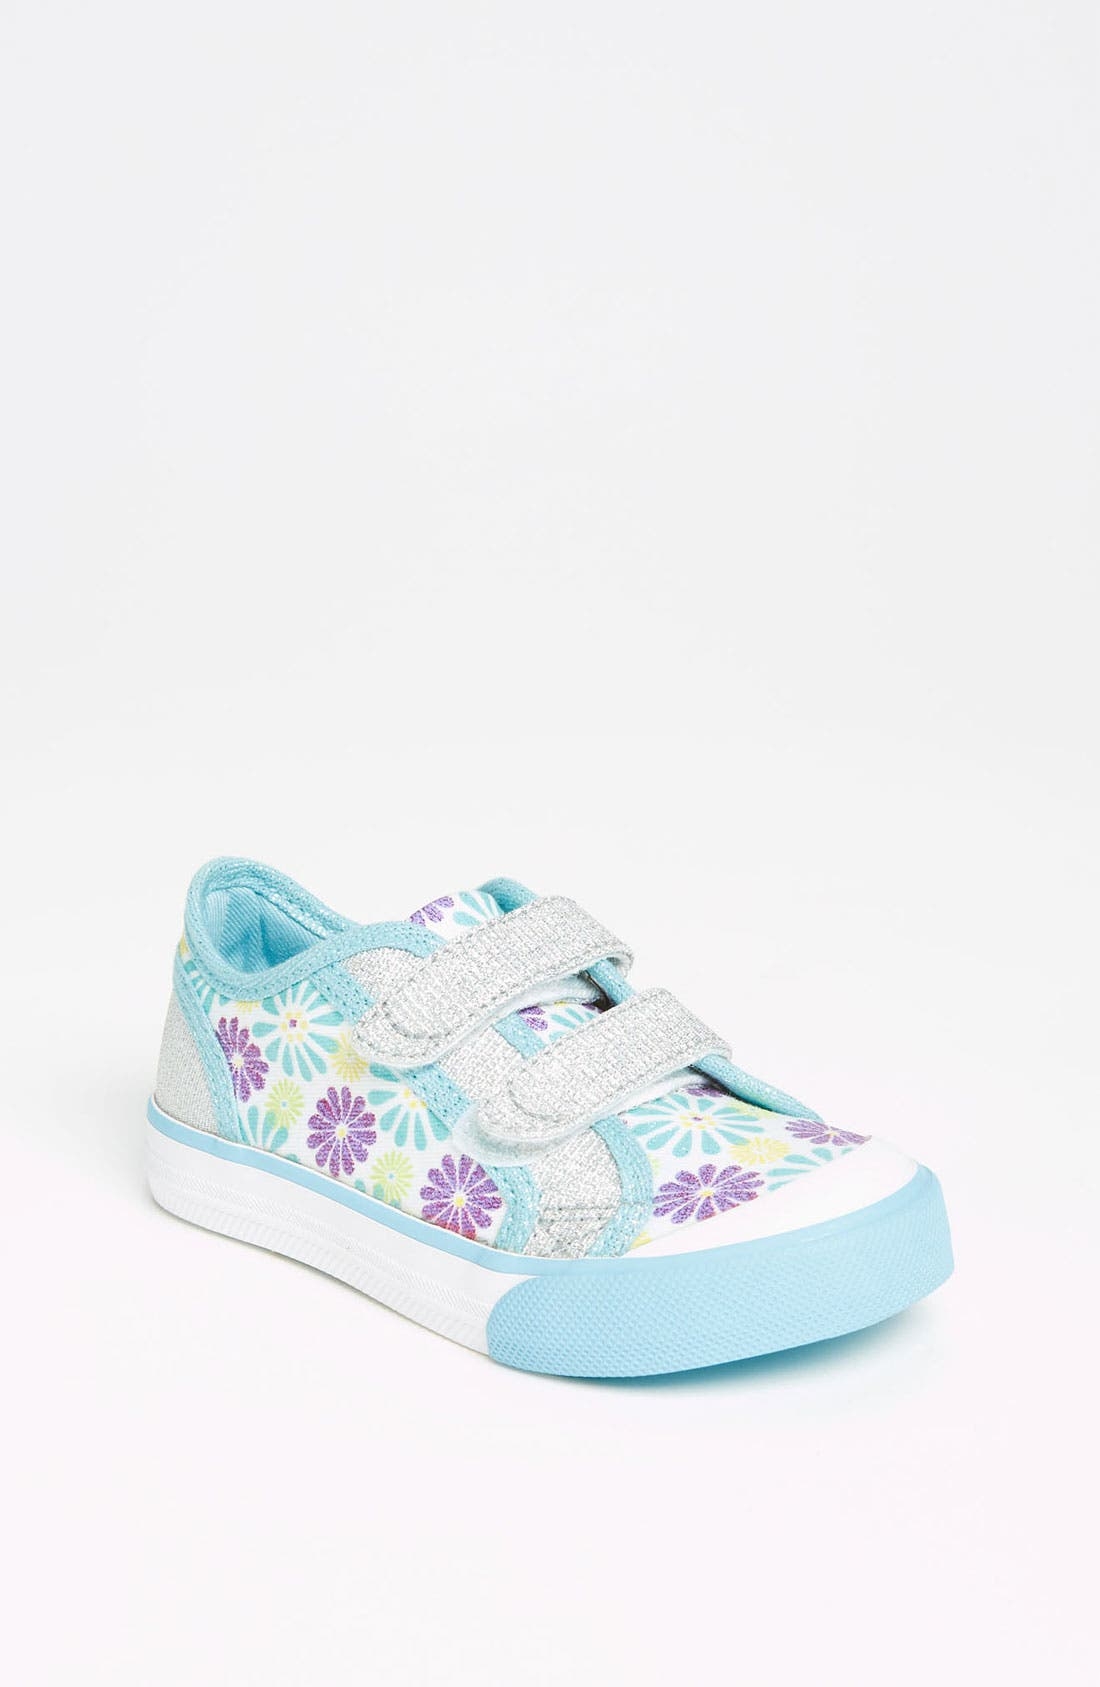 Main Image - Keds® 'Glamerly' Sneaker (Walker & Toddler)